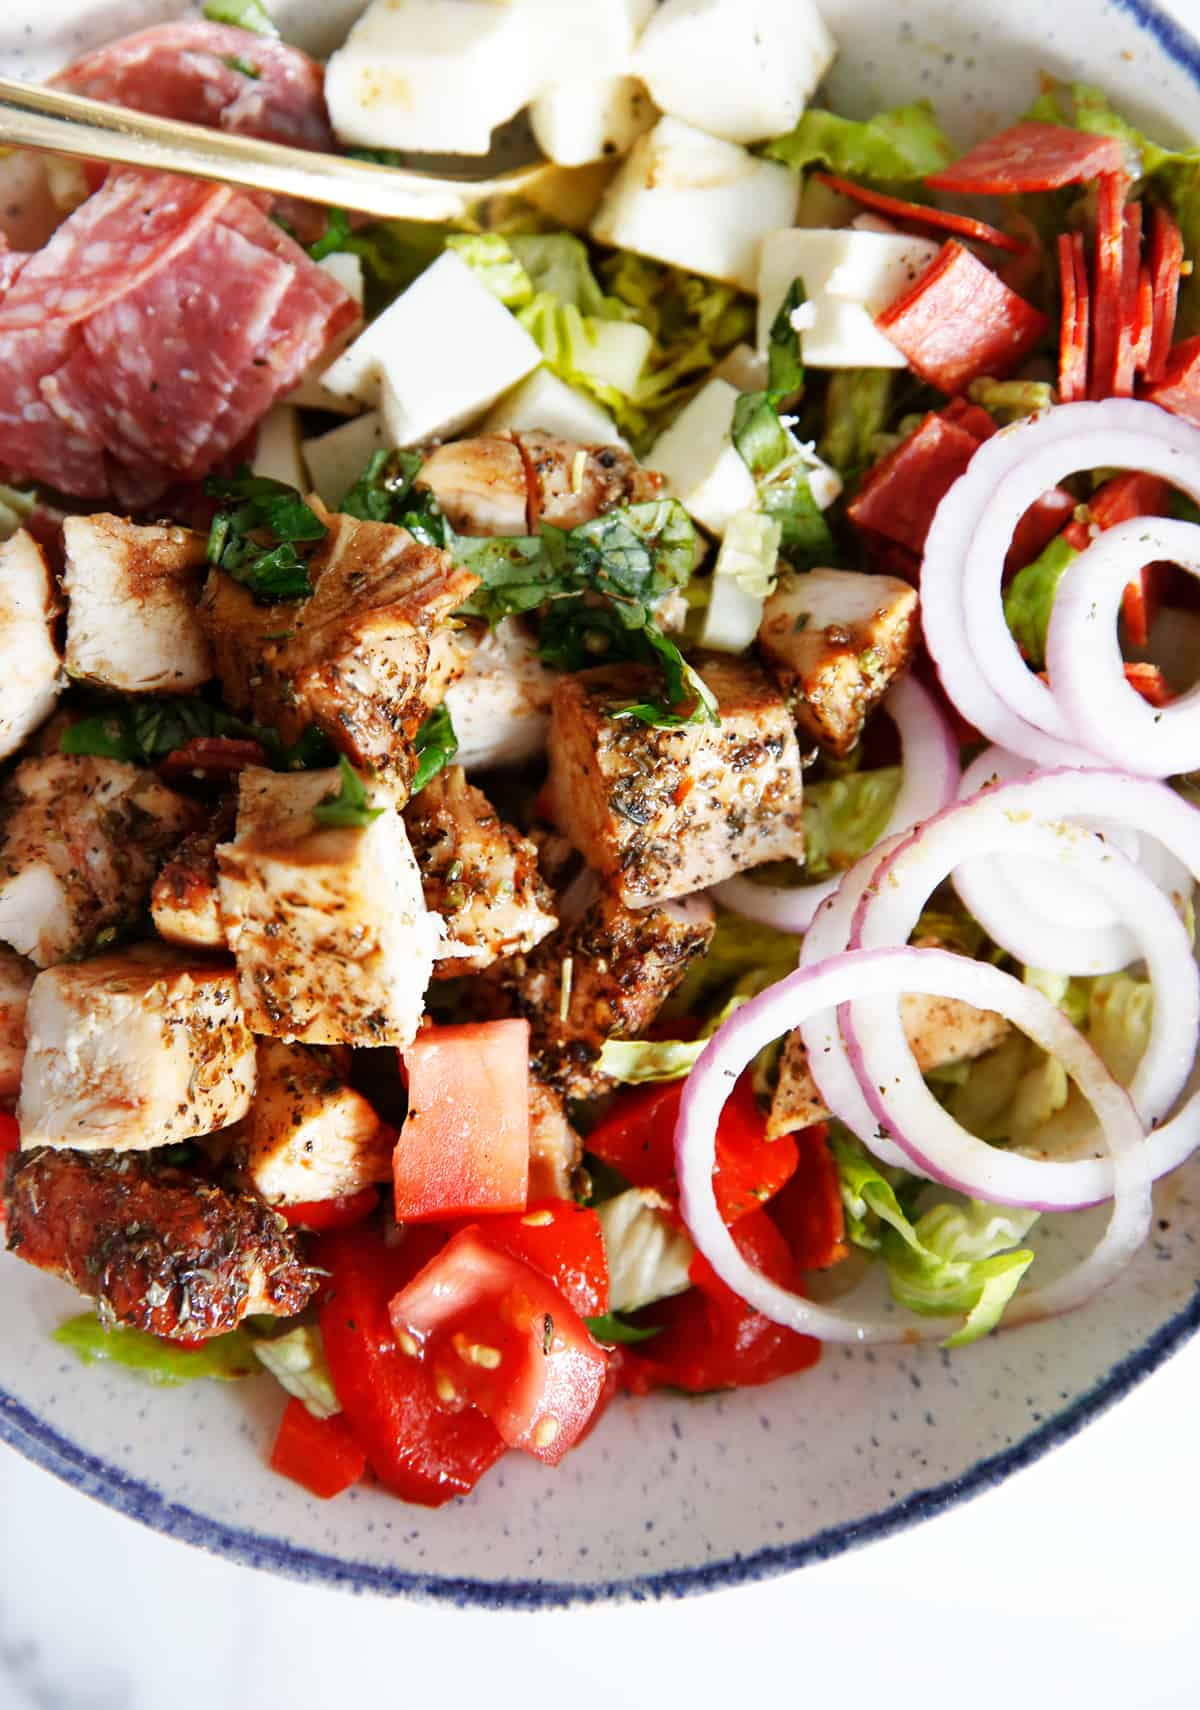 Chopped Antipasto Salad with Chicken